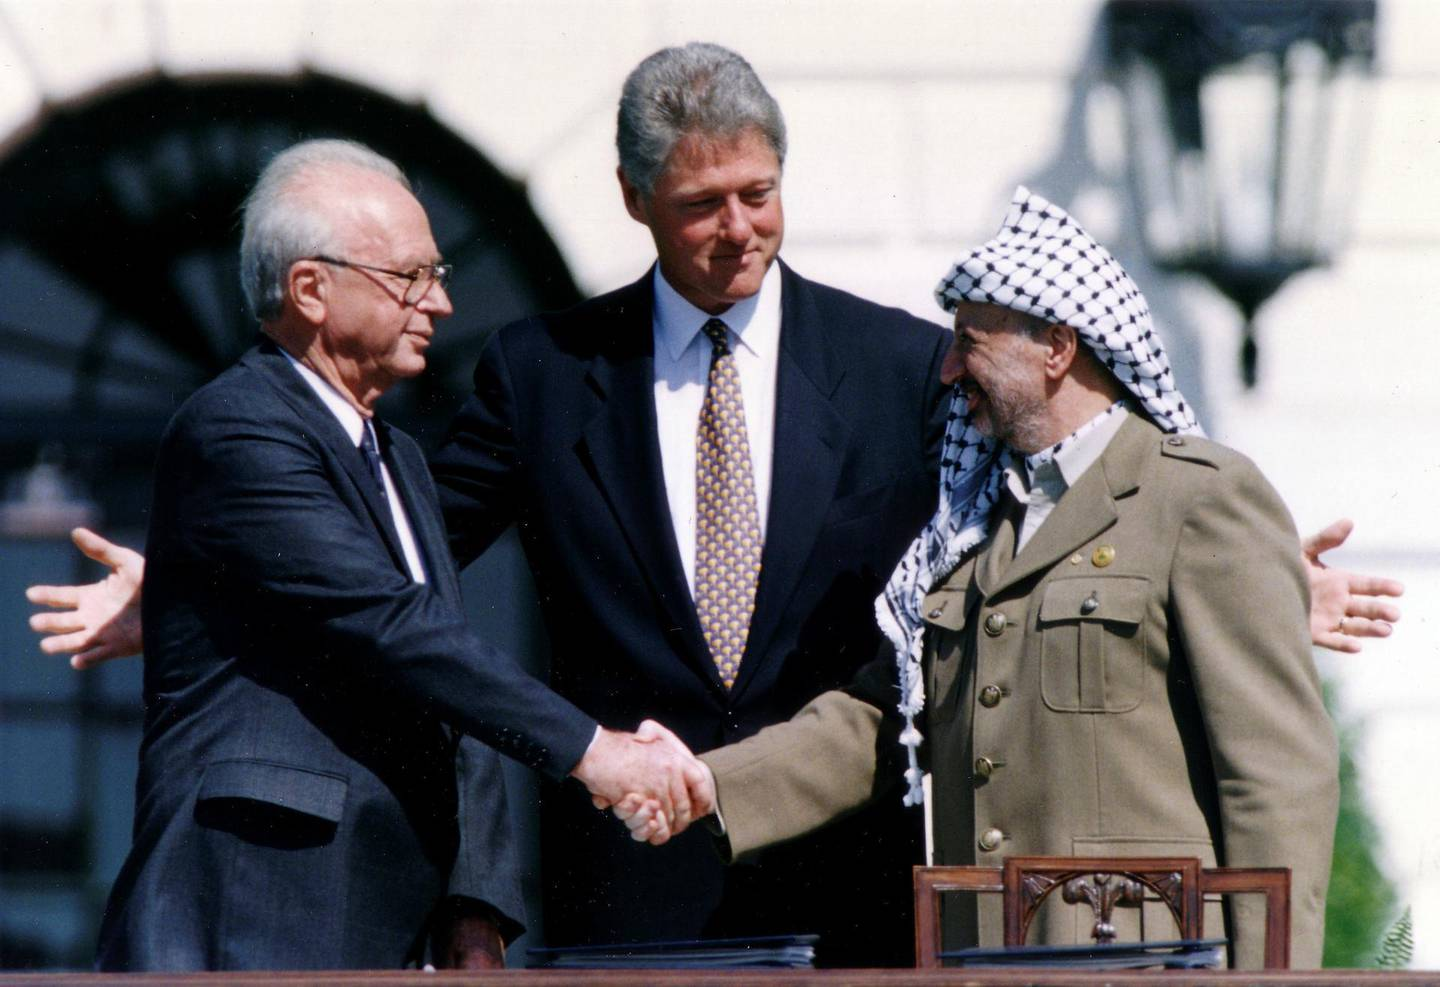 PLO Chairman Yasser Arafat (R) shake hands with Israeli Prime Minister Yitzhak Rabin (L), as U.S. President Bill Clinton stands between them, after the signing of the Israeli-PLO peace accord, at the White House in Washington September 13, 1993. REUTERS/Gary Hershorn (UNITED STATES - Tags: POLITICS)